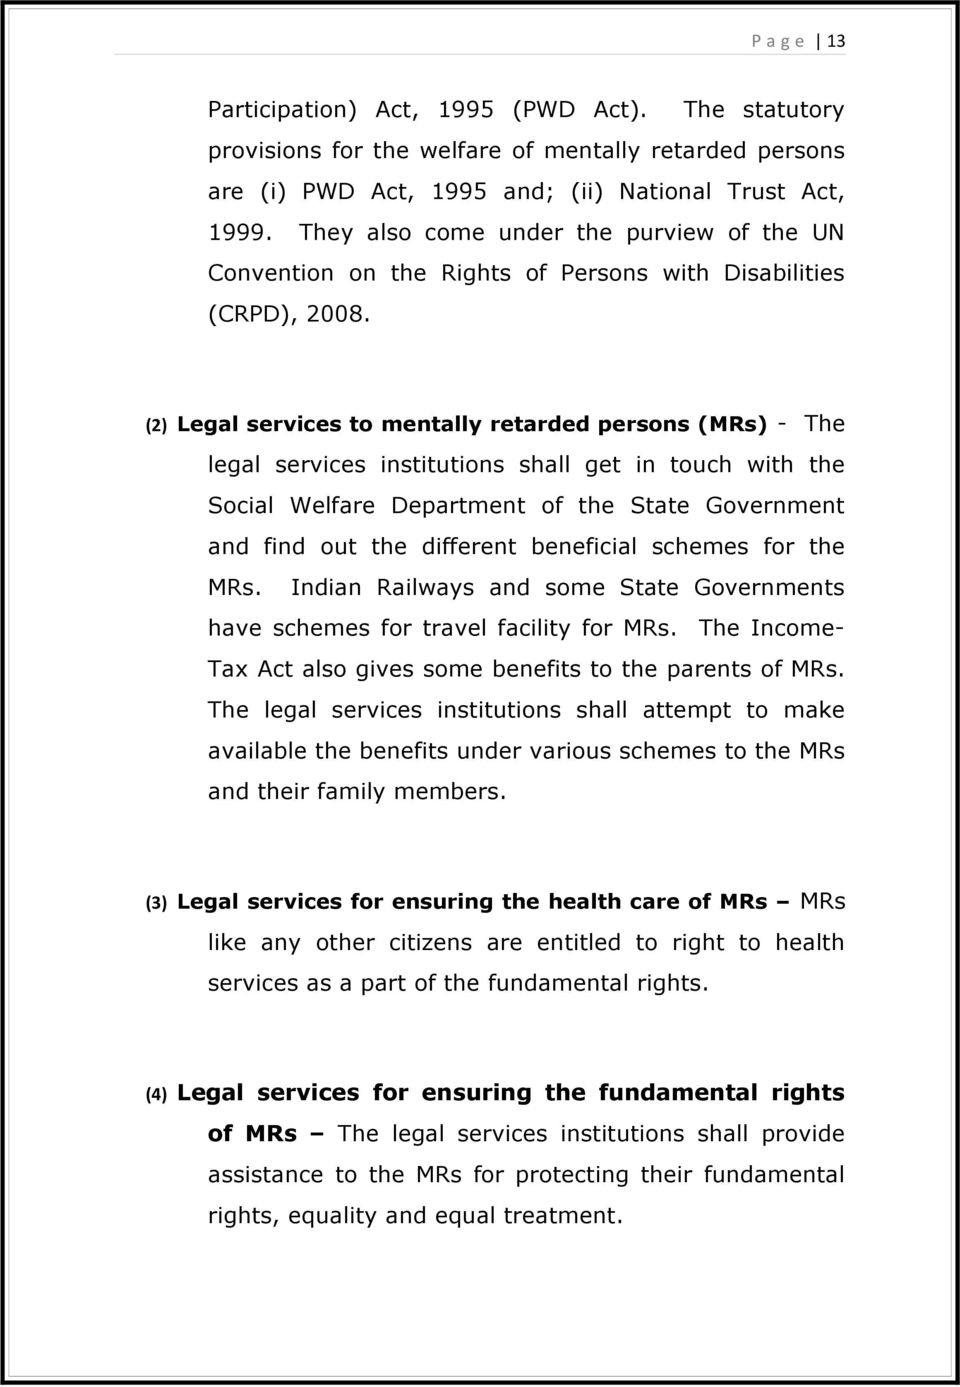 (2) Legal services to mentally retarded persons (MRs) - The legal services institutions shall get in touch with the Social Welfare Department of the State Government and find out the different